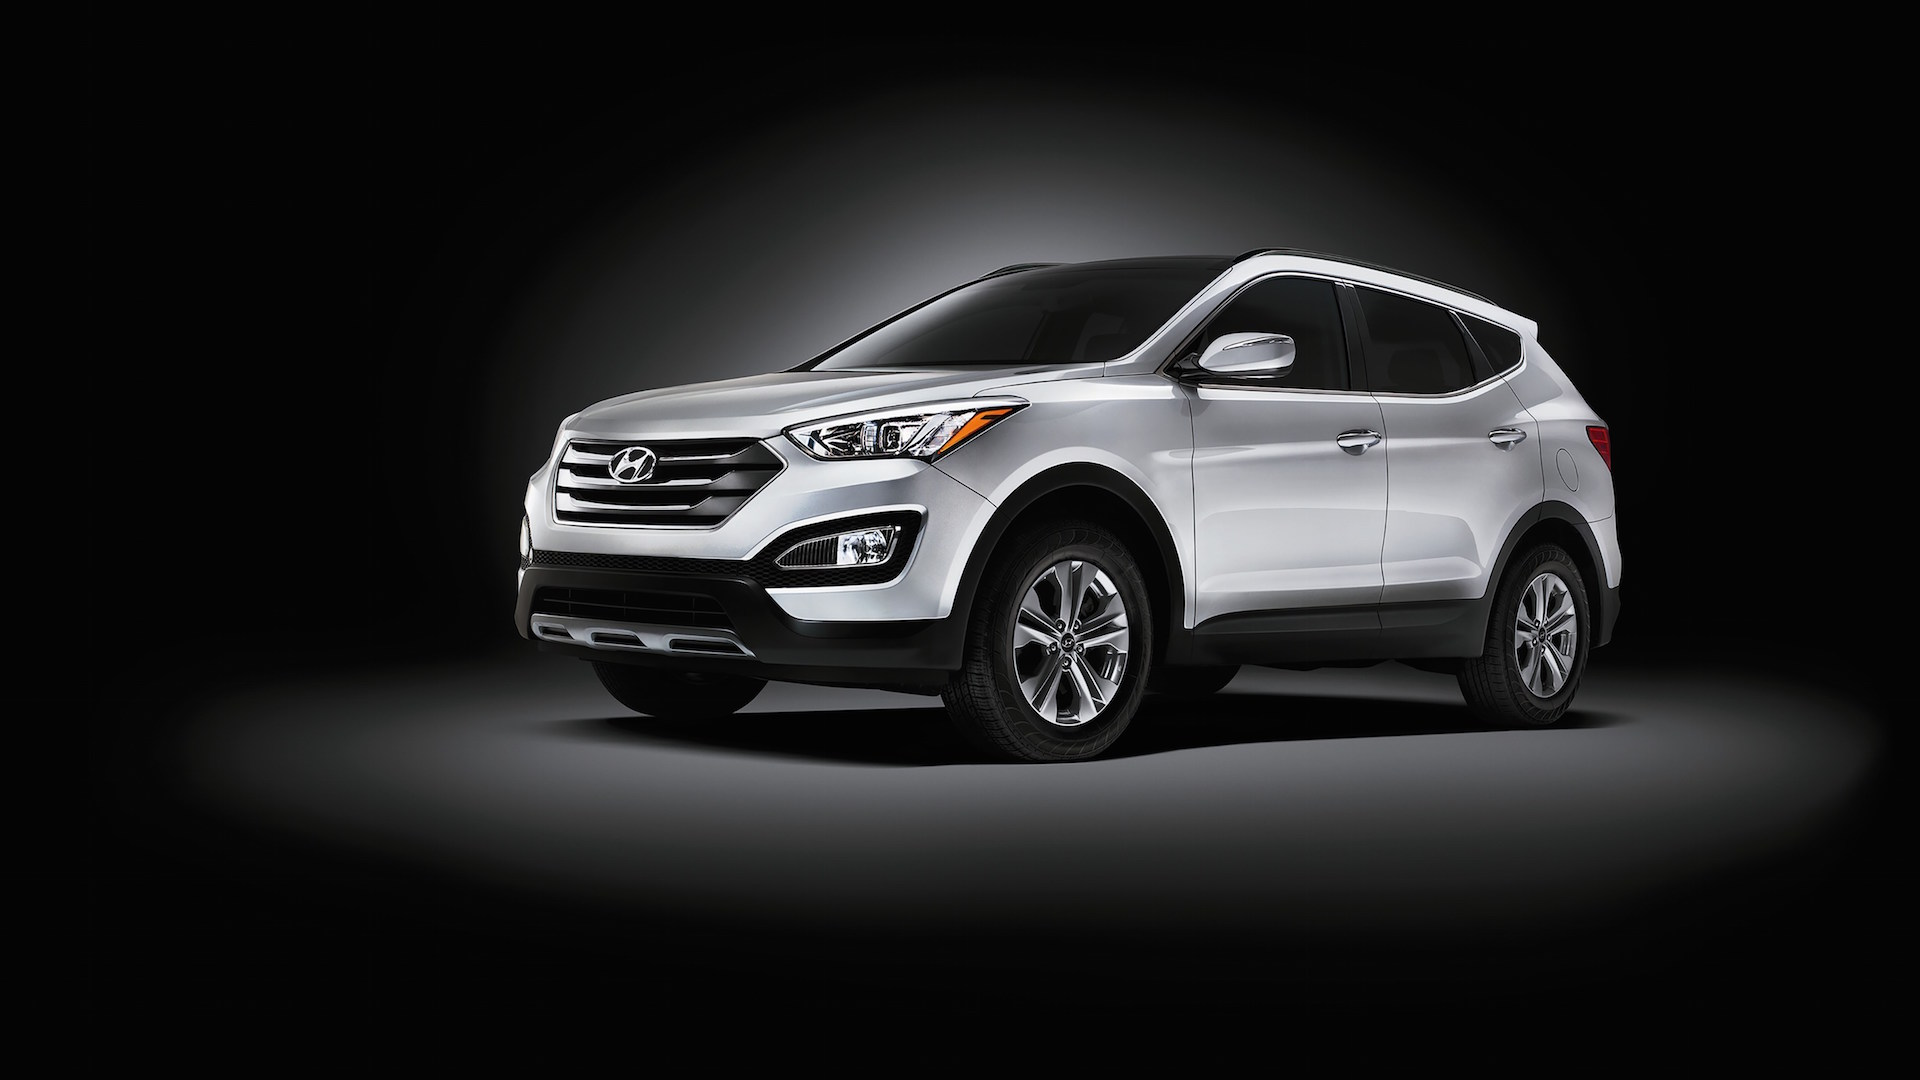 2016 Hyundai Santa Fe Sport Review, Ratings, Specs, Prices, And Photos    The Car Connection